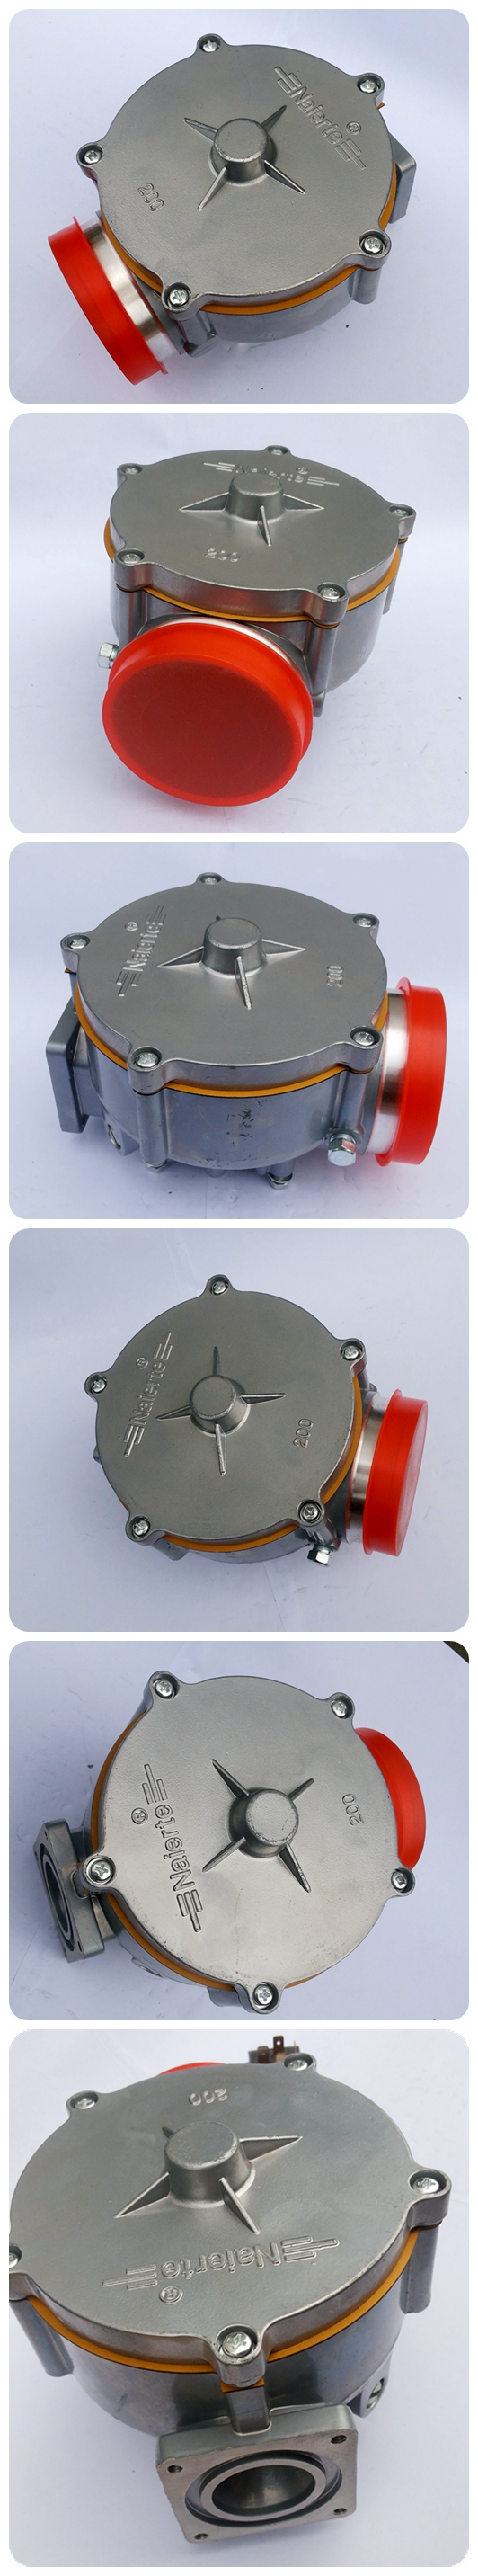 CNG/LNG Auto parts valve carburetor